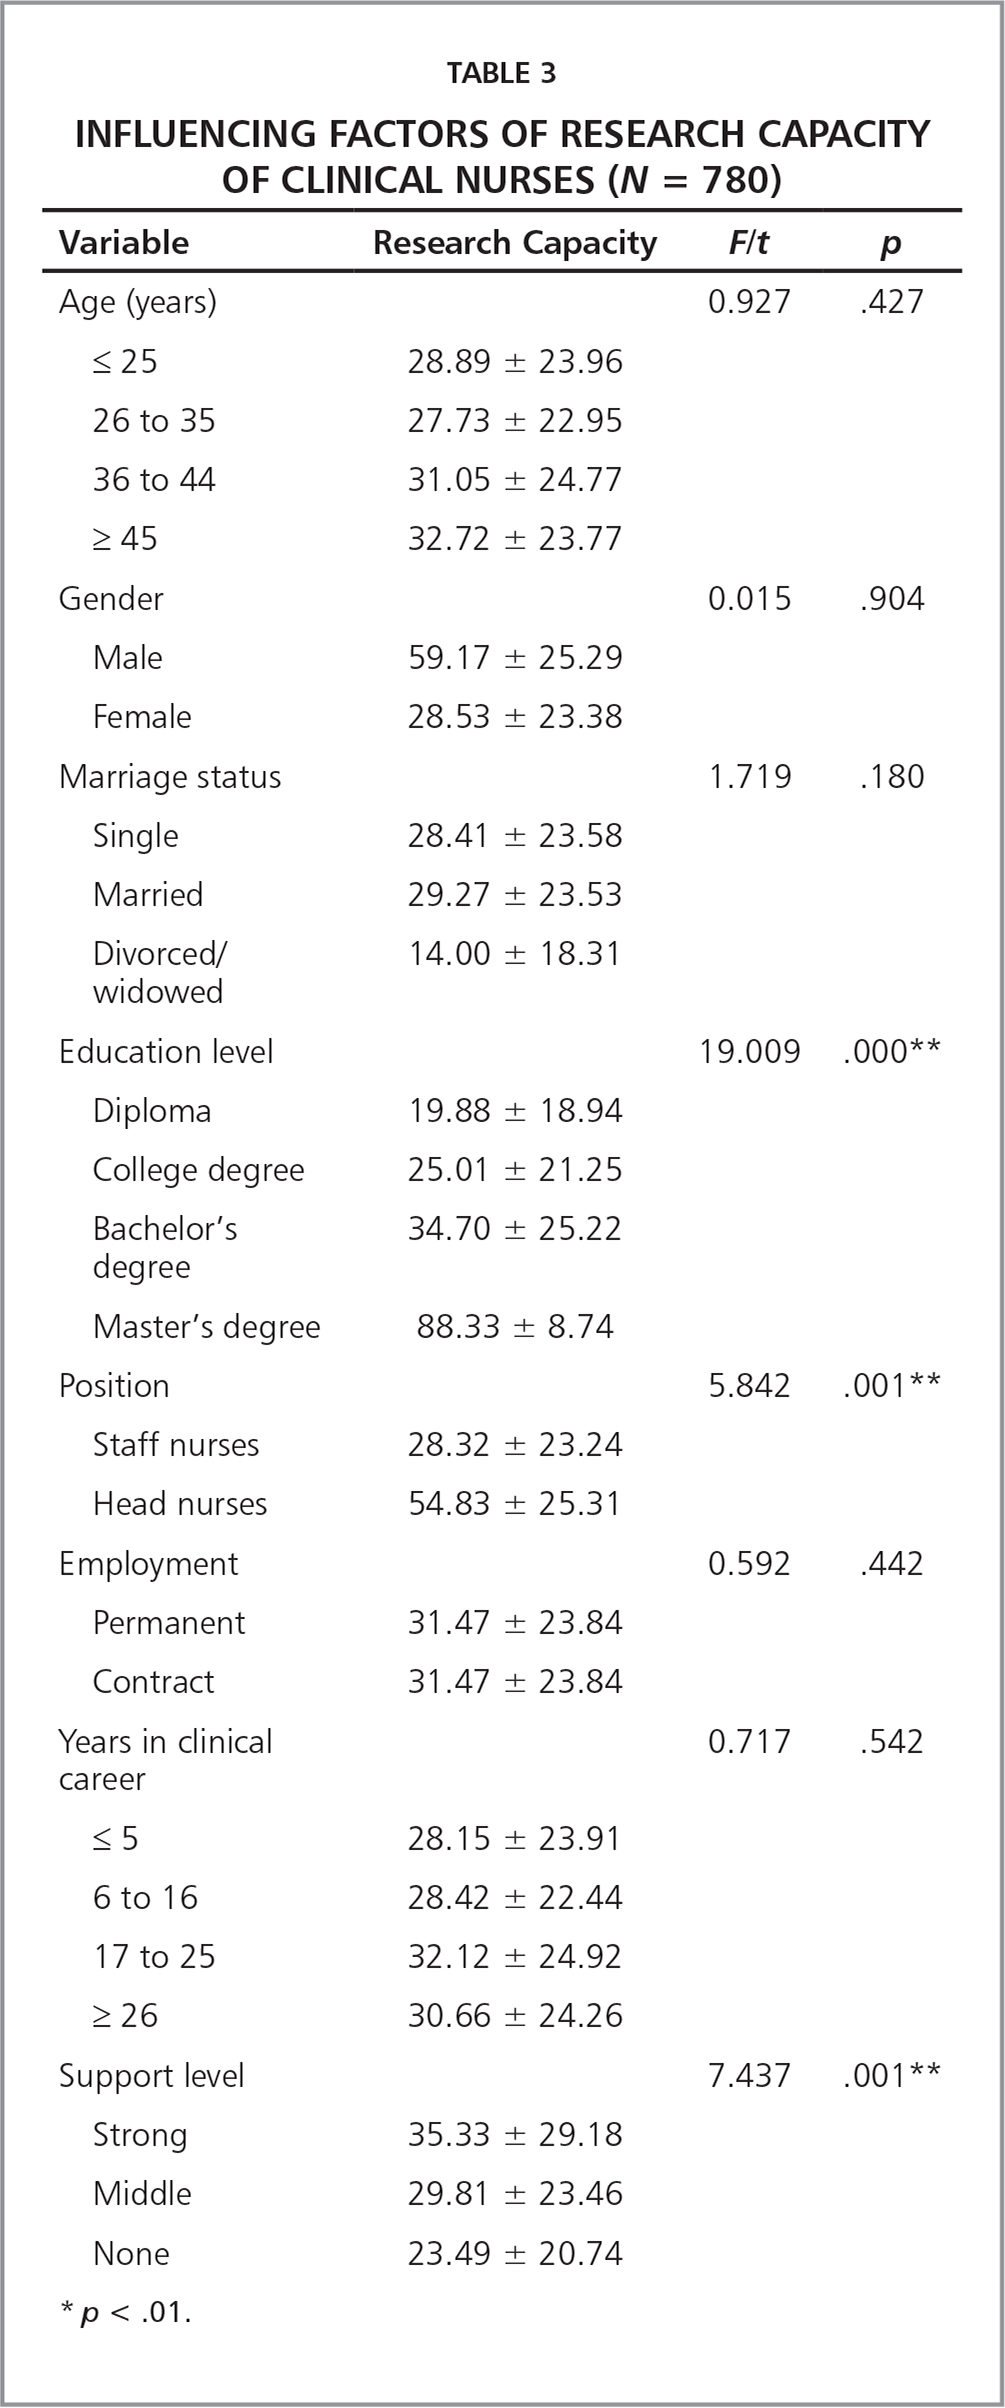 Influencing Factors of Research Capacity of Clinical Nurses (N = 780)